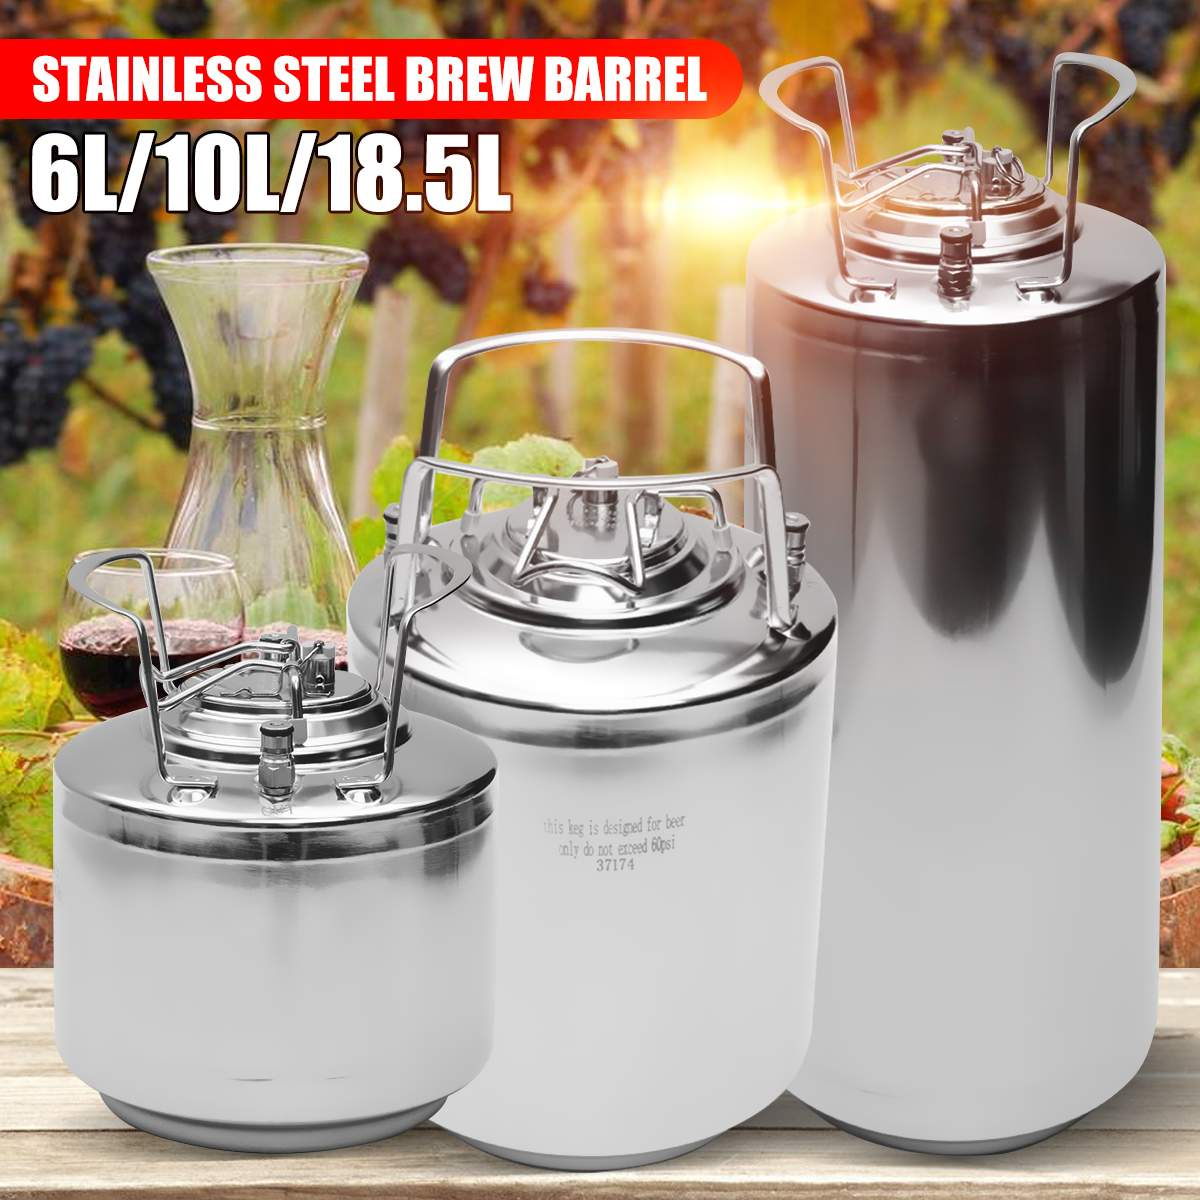 6/10/18.5L Stainless Steel Mini Beer Keg Pressurized Growler for Craft Beer Dispenser System Home Brew Beer Brewing Metal Handle image